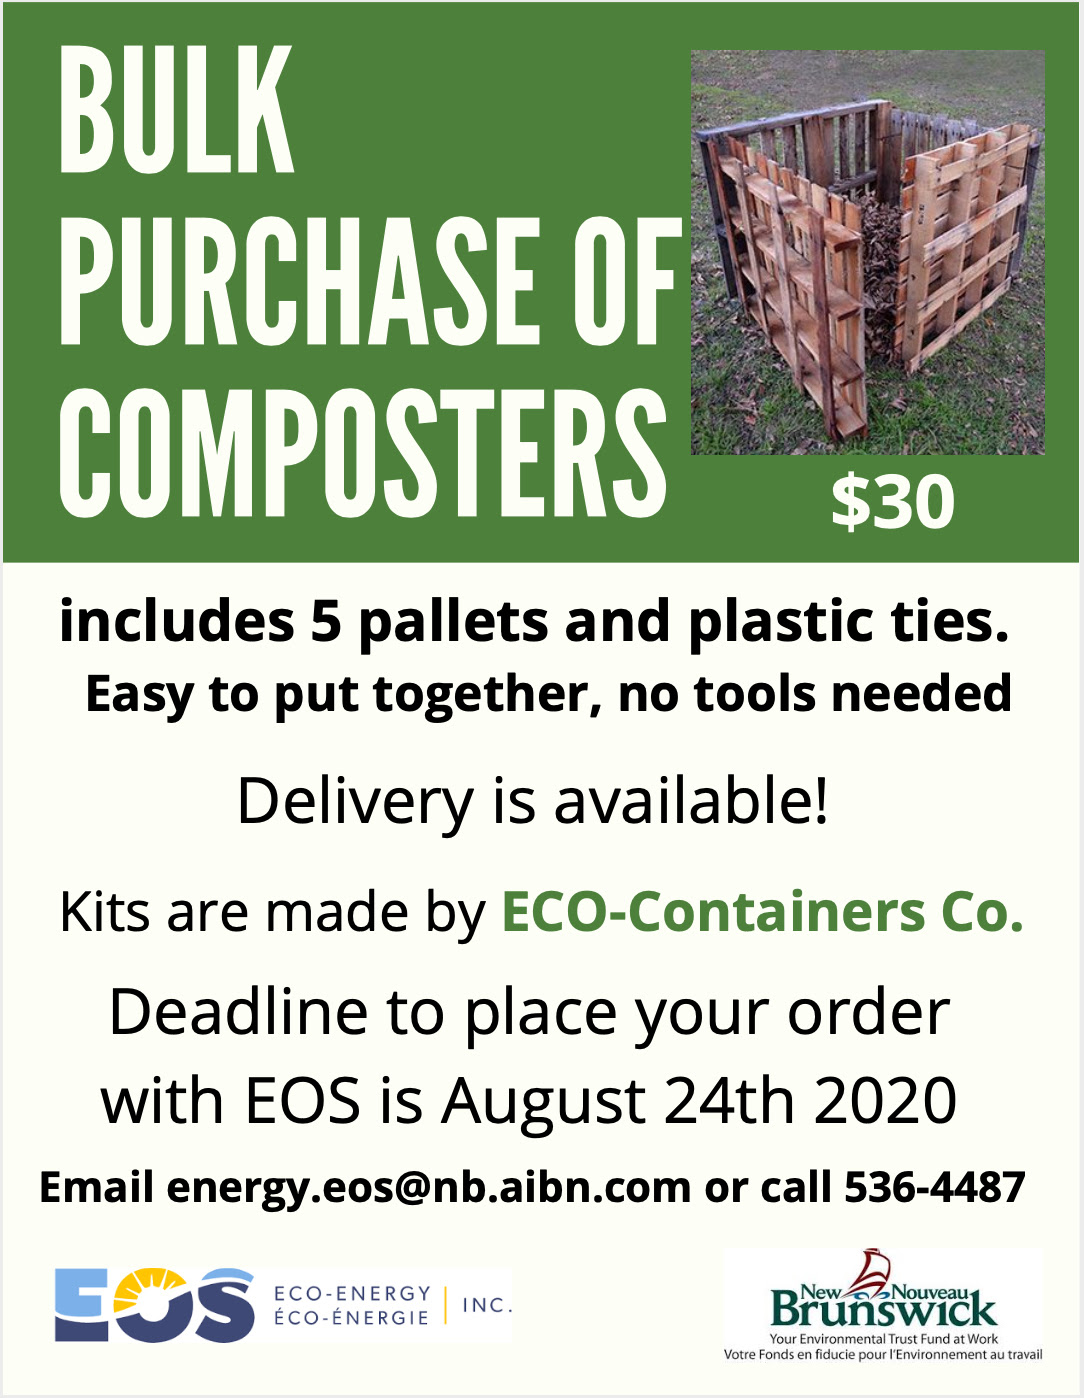 Includes 5 pallets and plastic ties. Easy to put together, no tools needed. Delivery is available! Kits are made by Eco-Containers Co. Deadline to place your order with EOS is August 24th, 2020. Email energy.eos|@nb.aibn.com or call 536-4487.